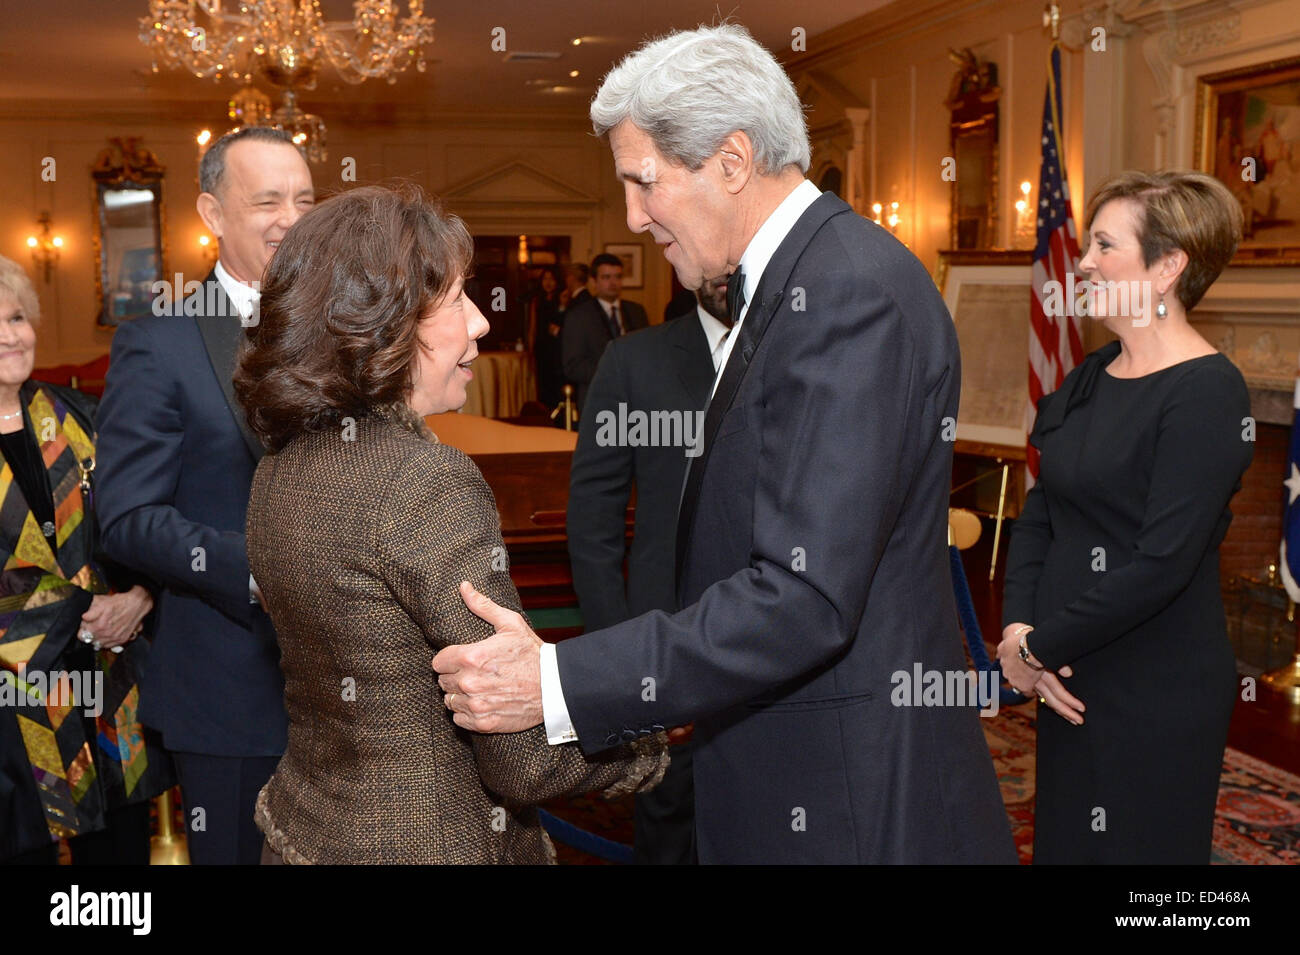 With 2014 Kennedy Center Honoree Tom Hanks looking on, U.S. Secretary of State John Kerry chats with fellow 2014 - Stock Image